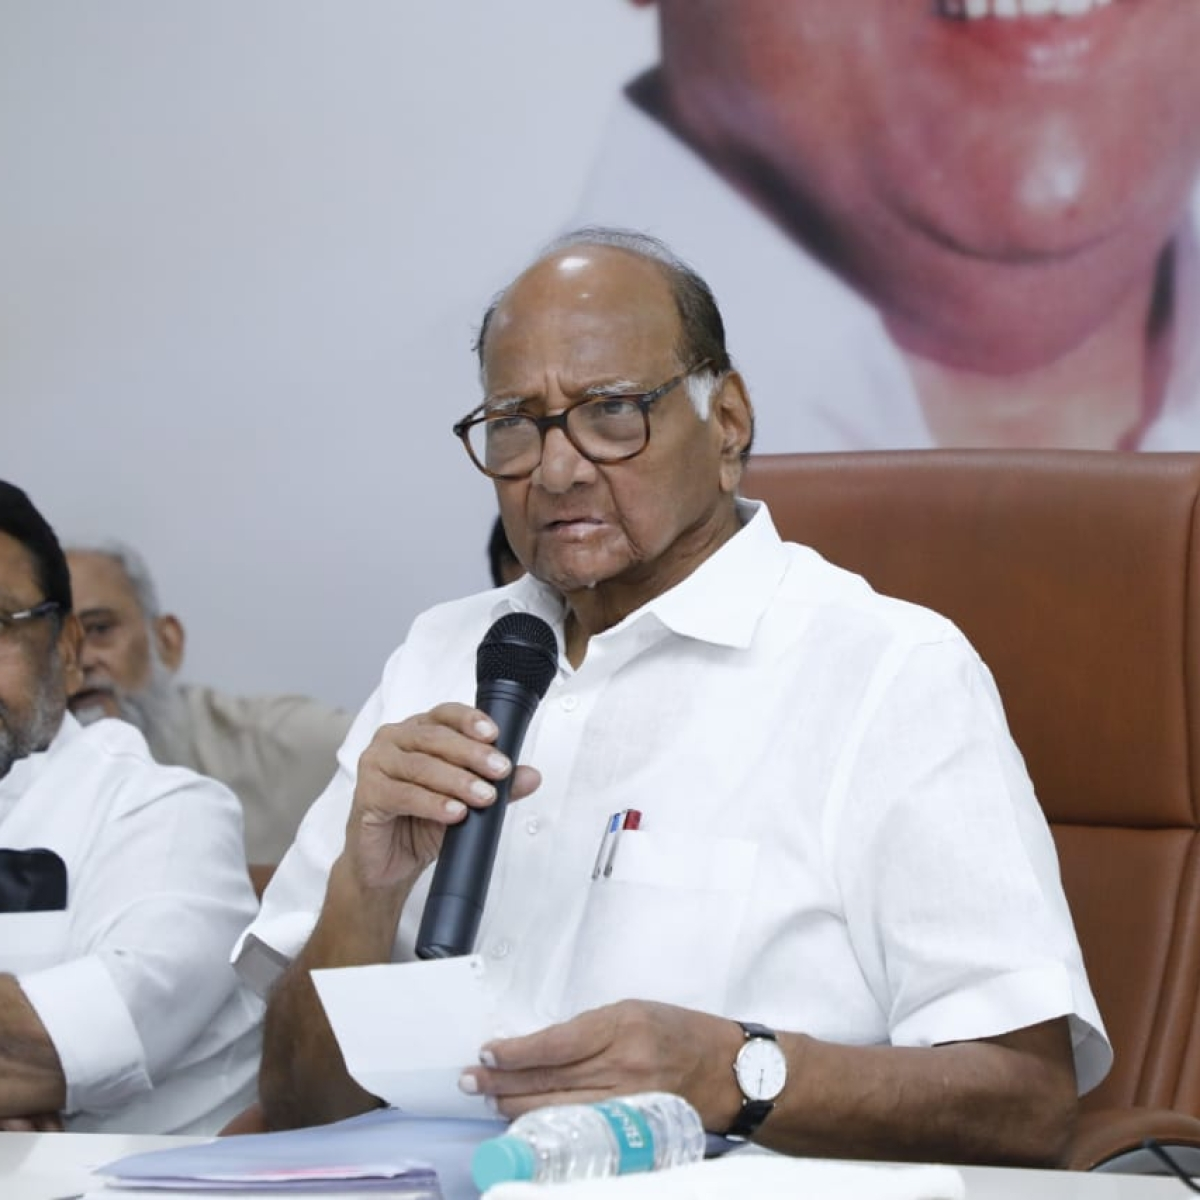 'Tribals are the original inhabitants': Sharad Pawar backs tribals for recognition of their indigenousness